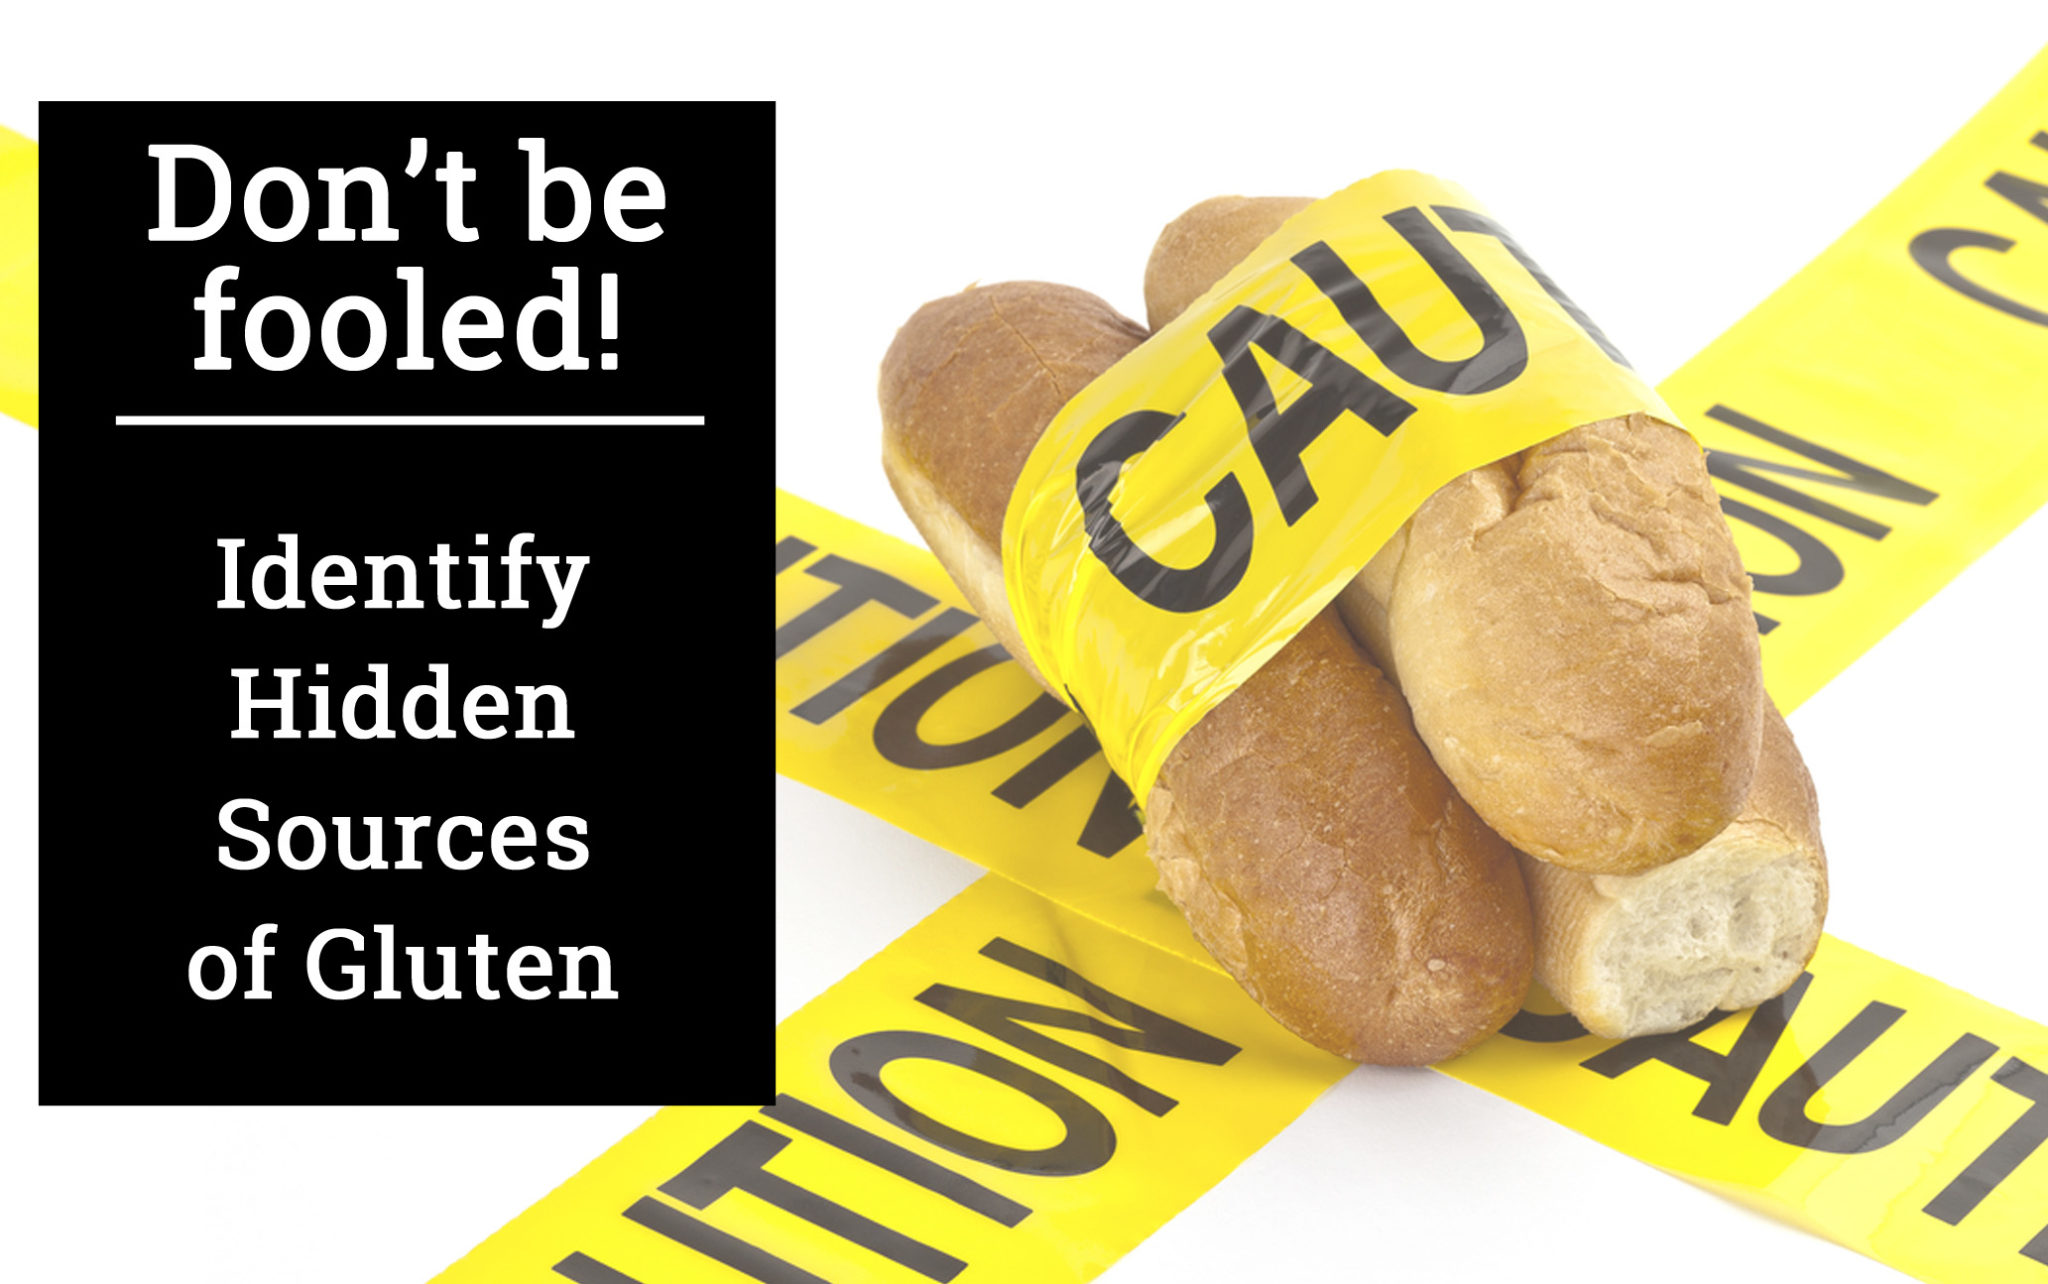 hidden sources of gluten